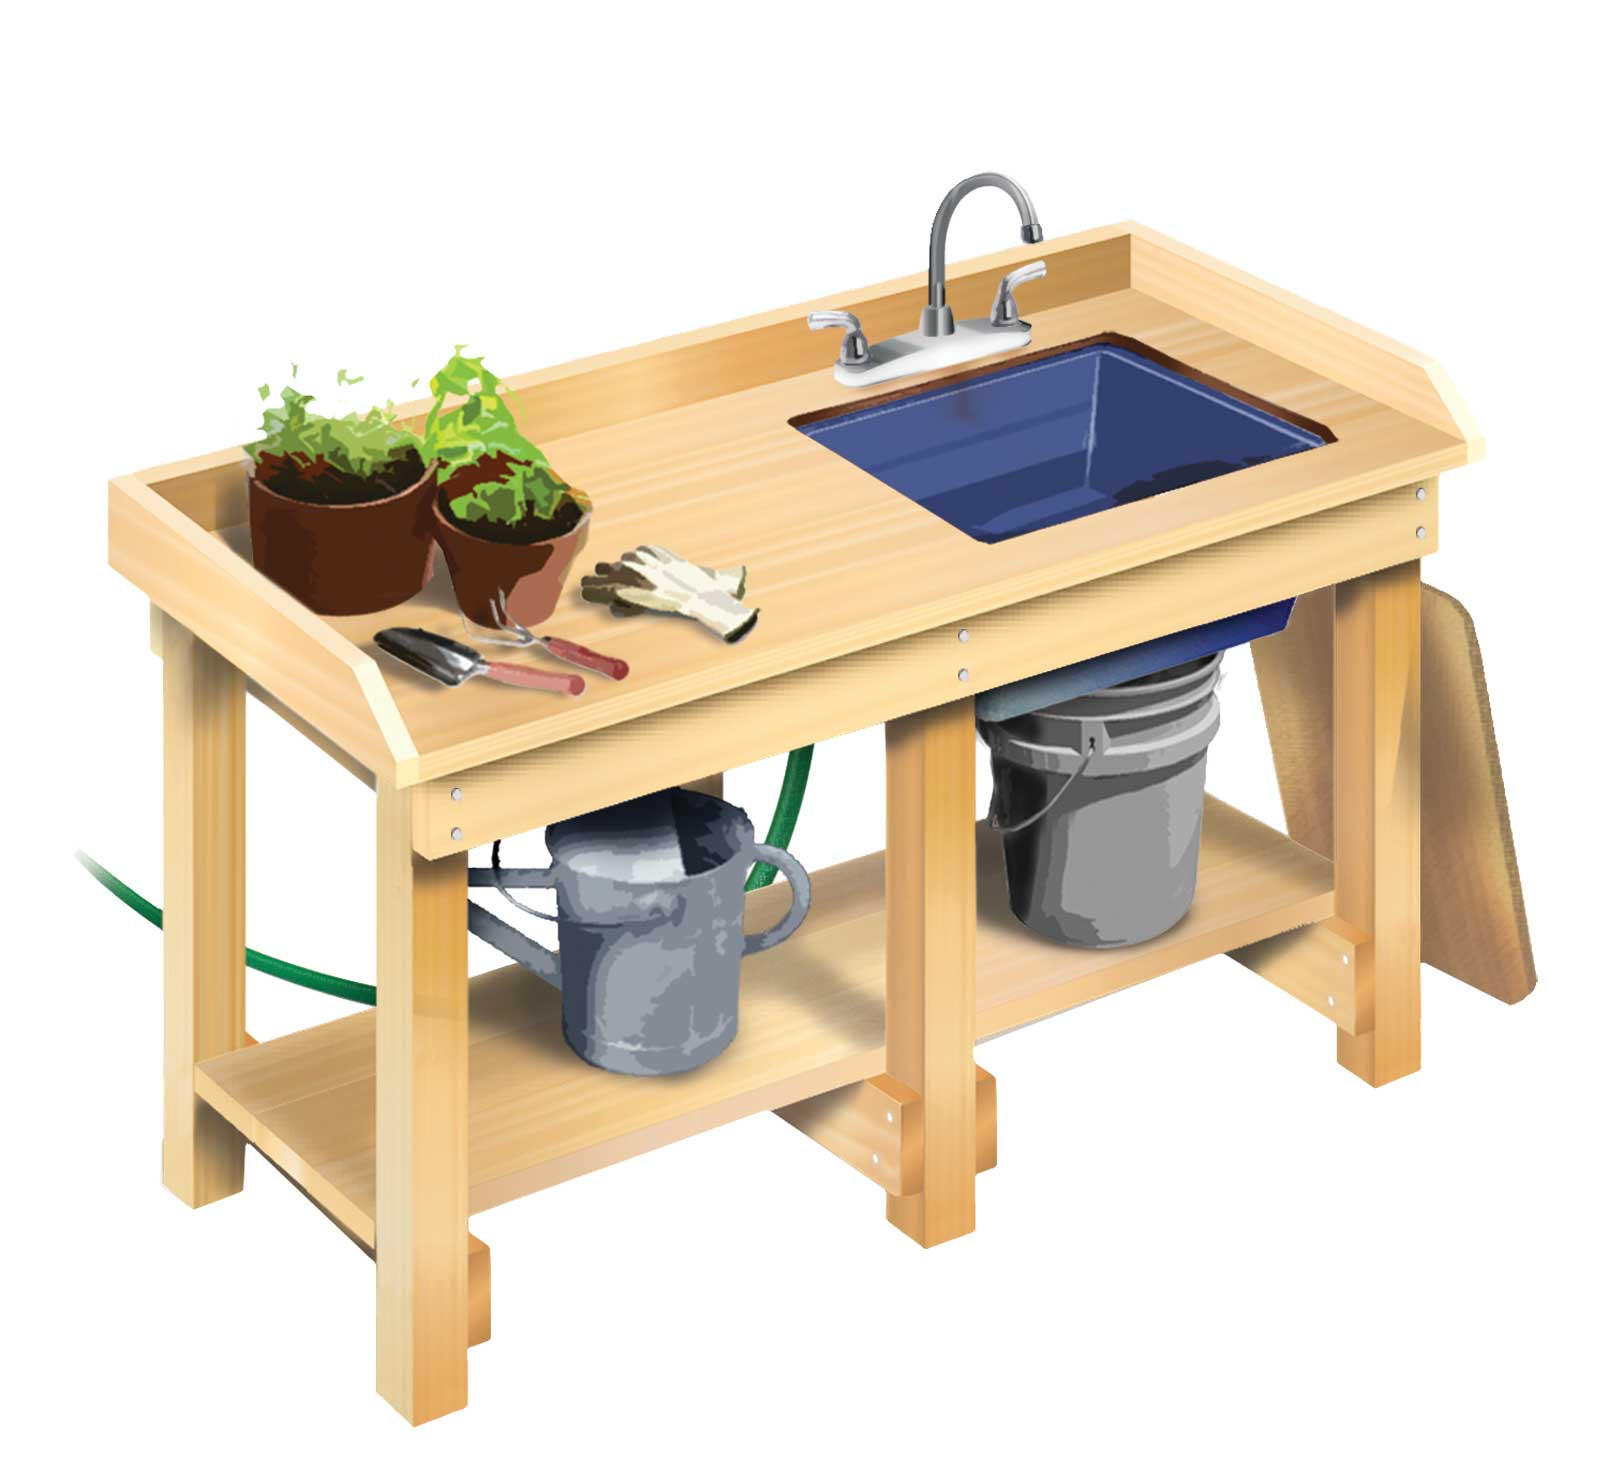 DIY Outdoor Workbench  How to Build a Workbench DIY MOTHER EARTH NEWS